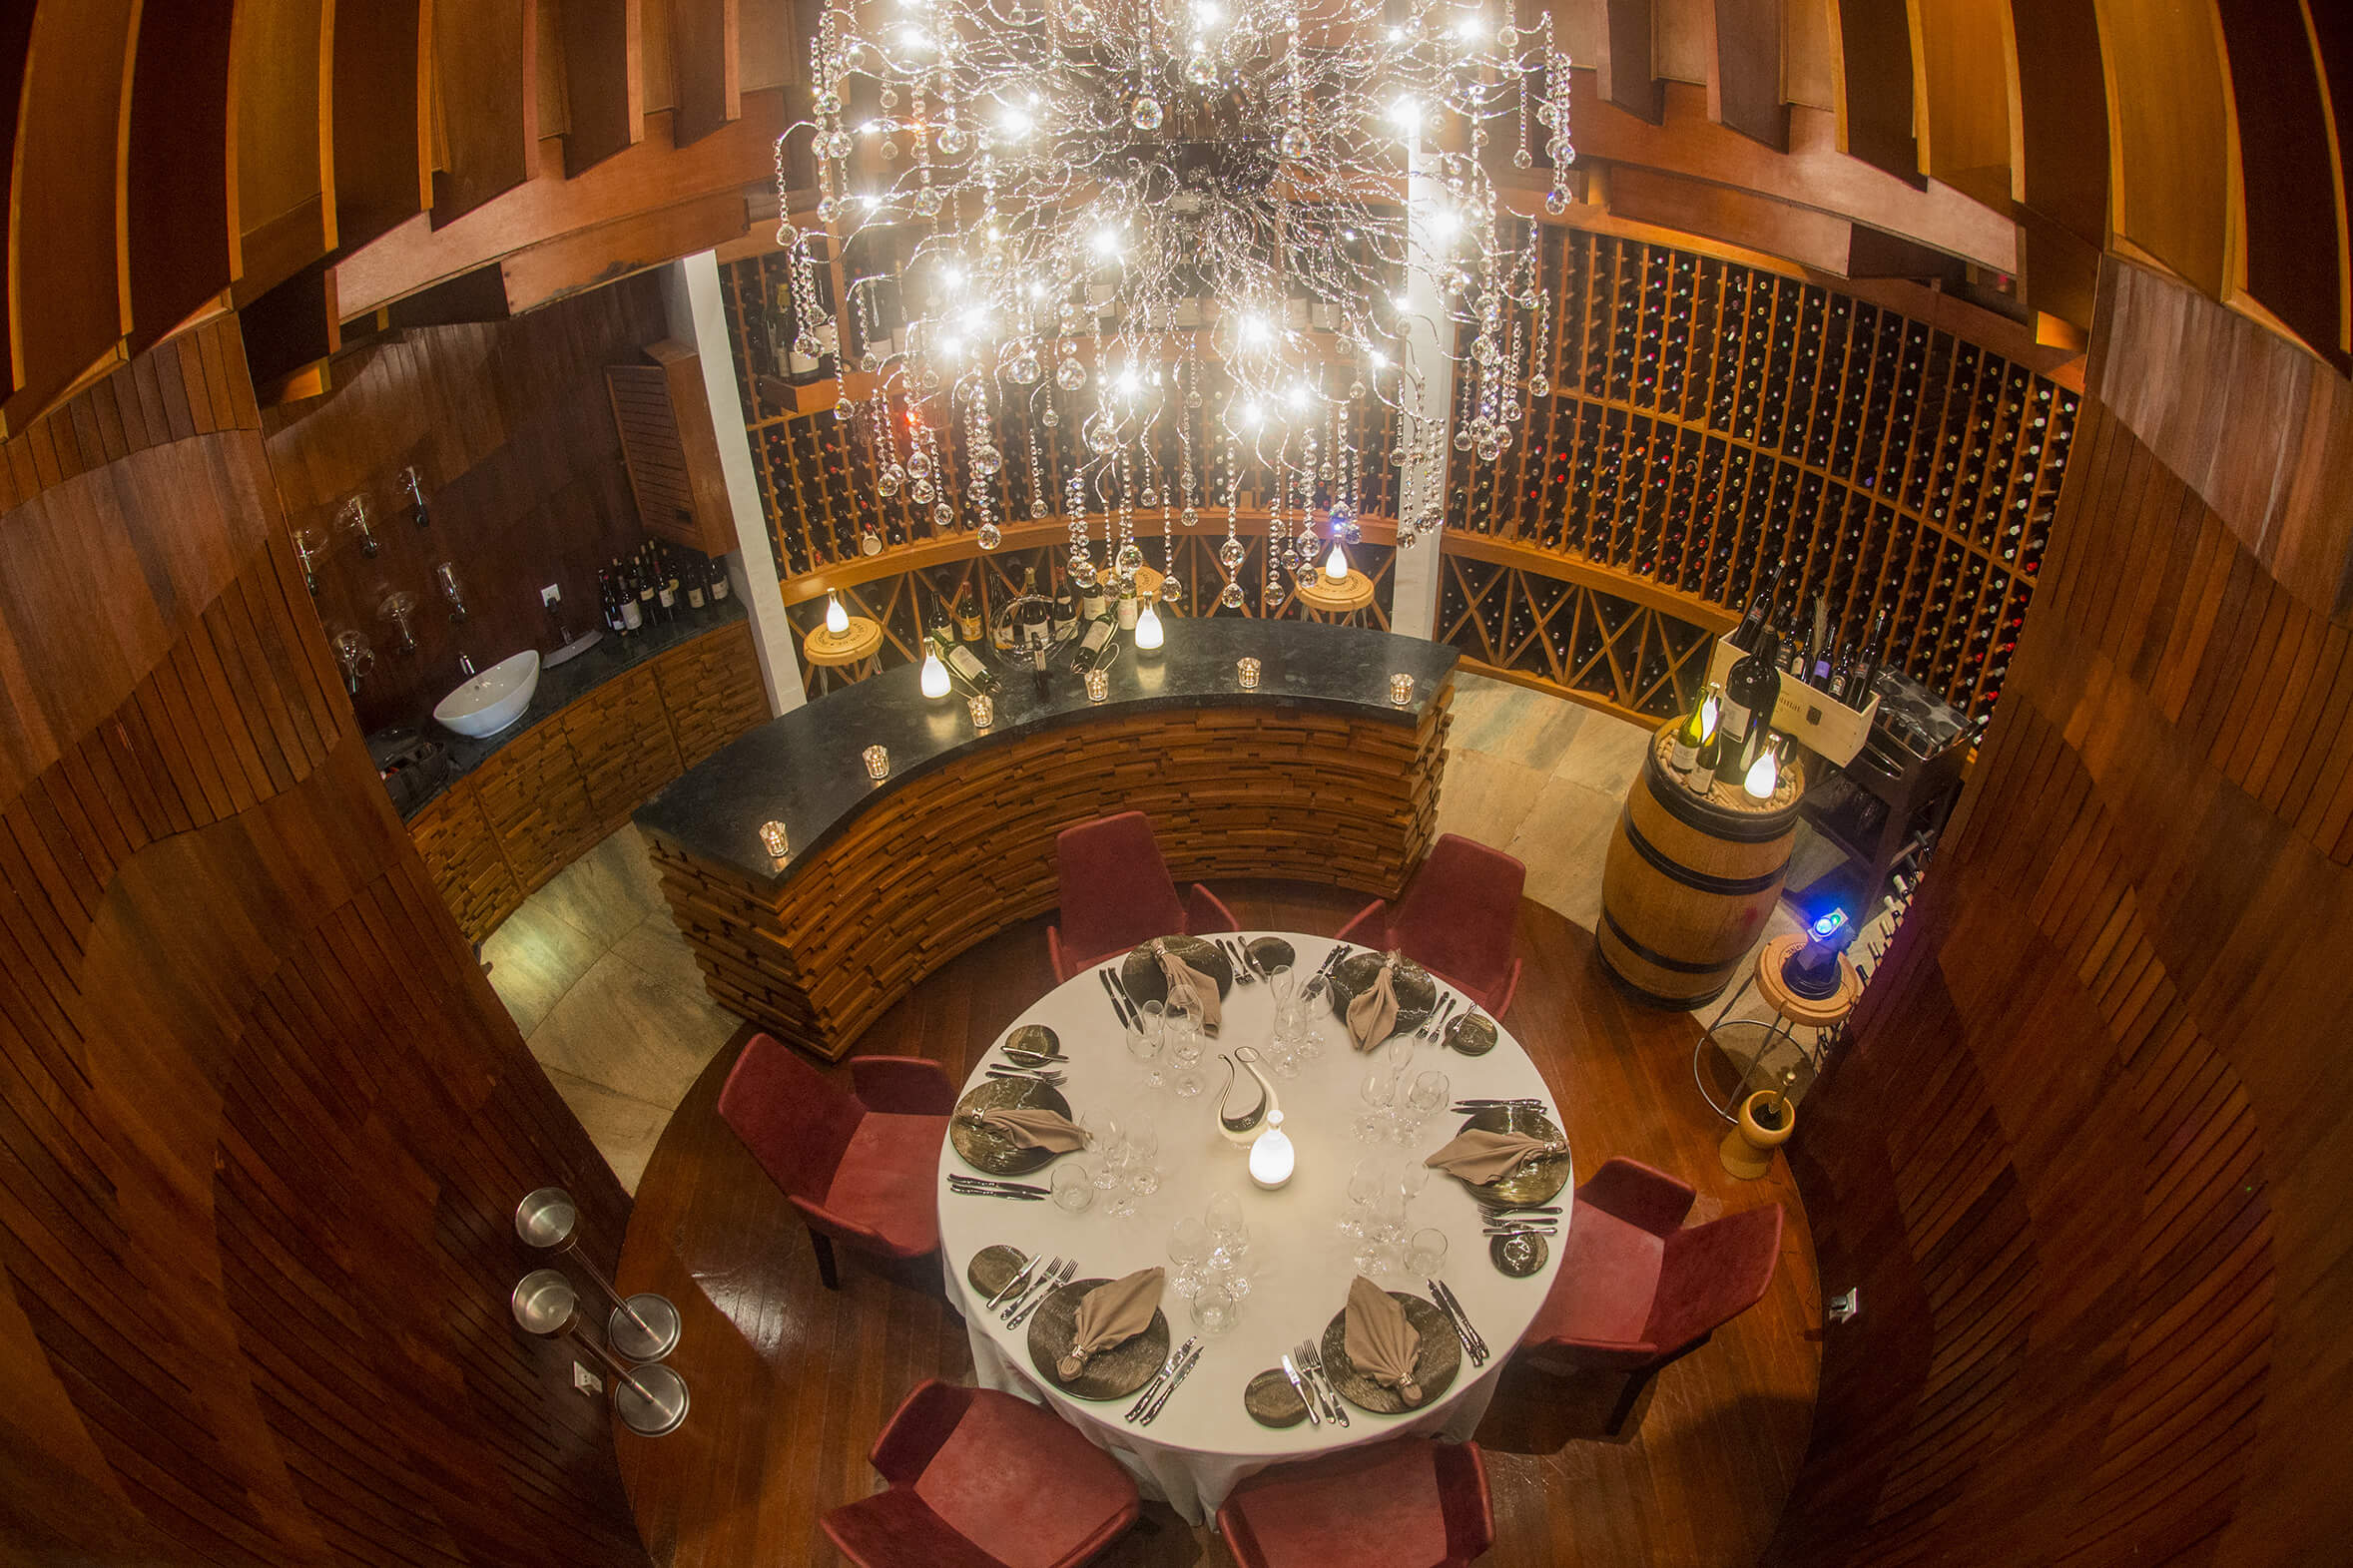 Tailored set-menu, wine pairing and private wine cellar